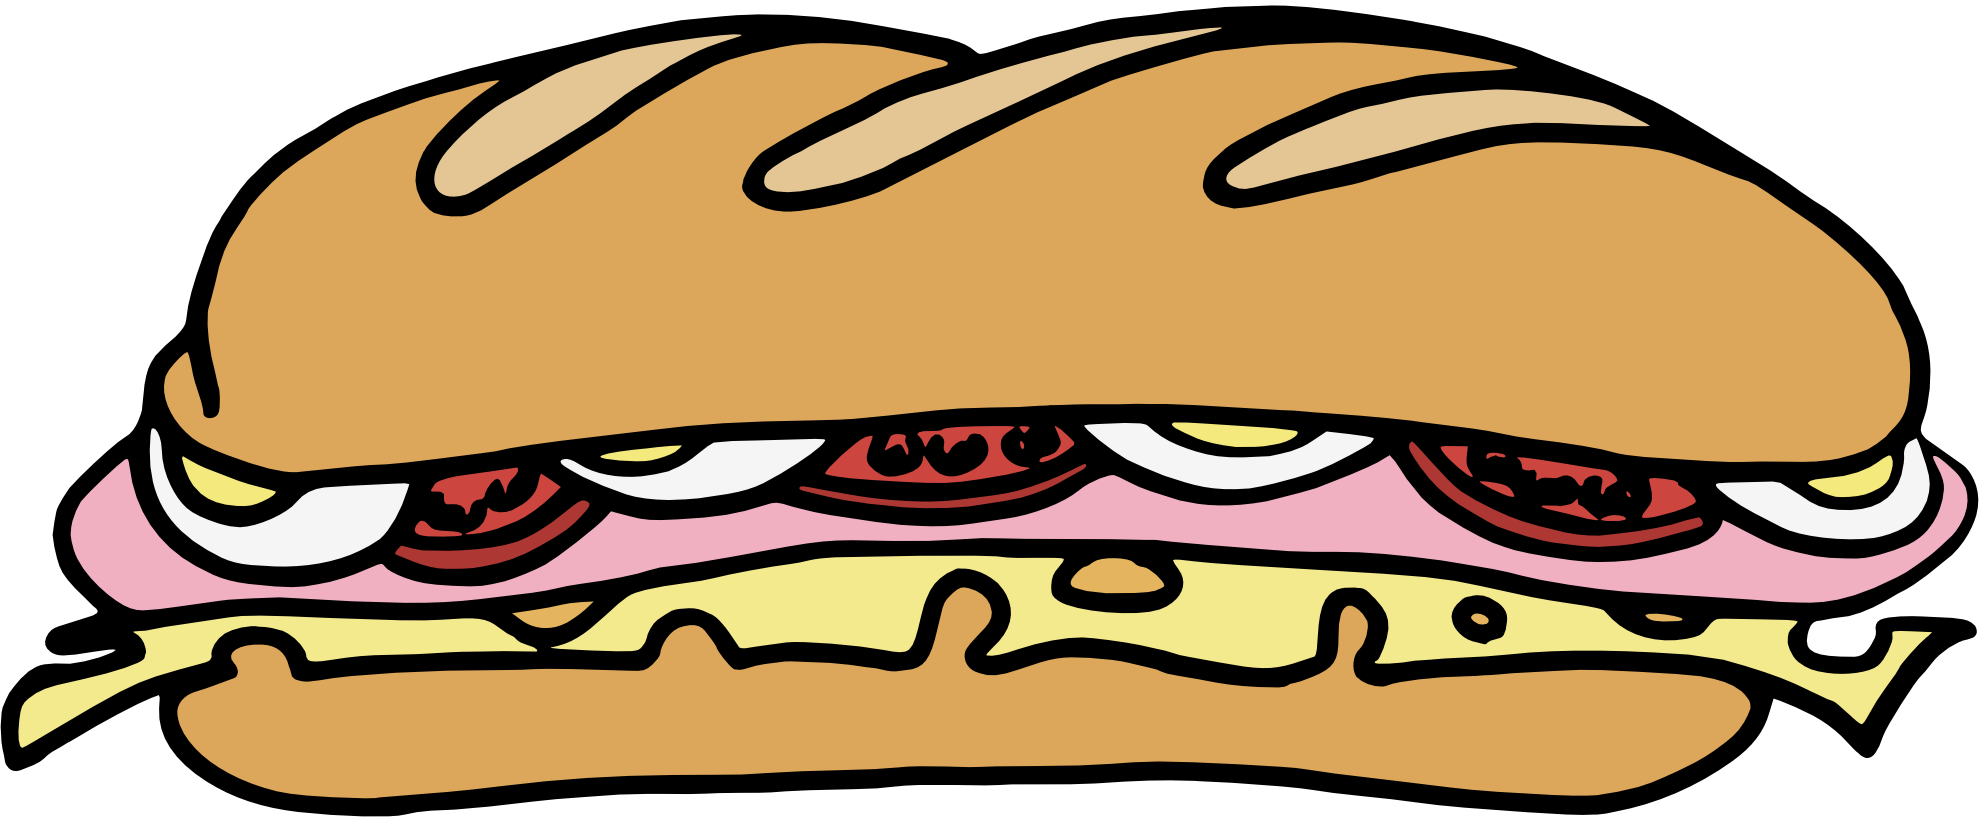 Tuna clipart cartoon. Images for cheese sandwich